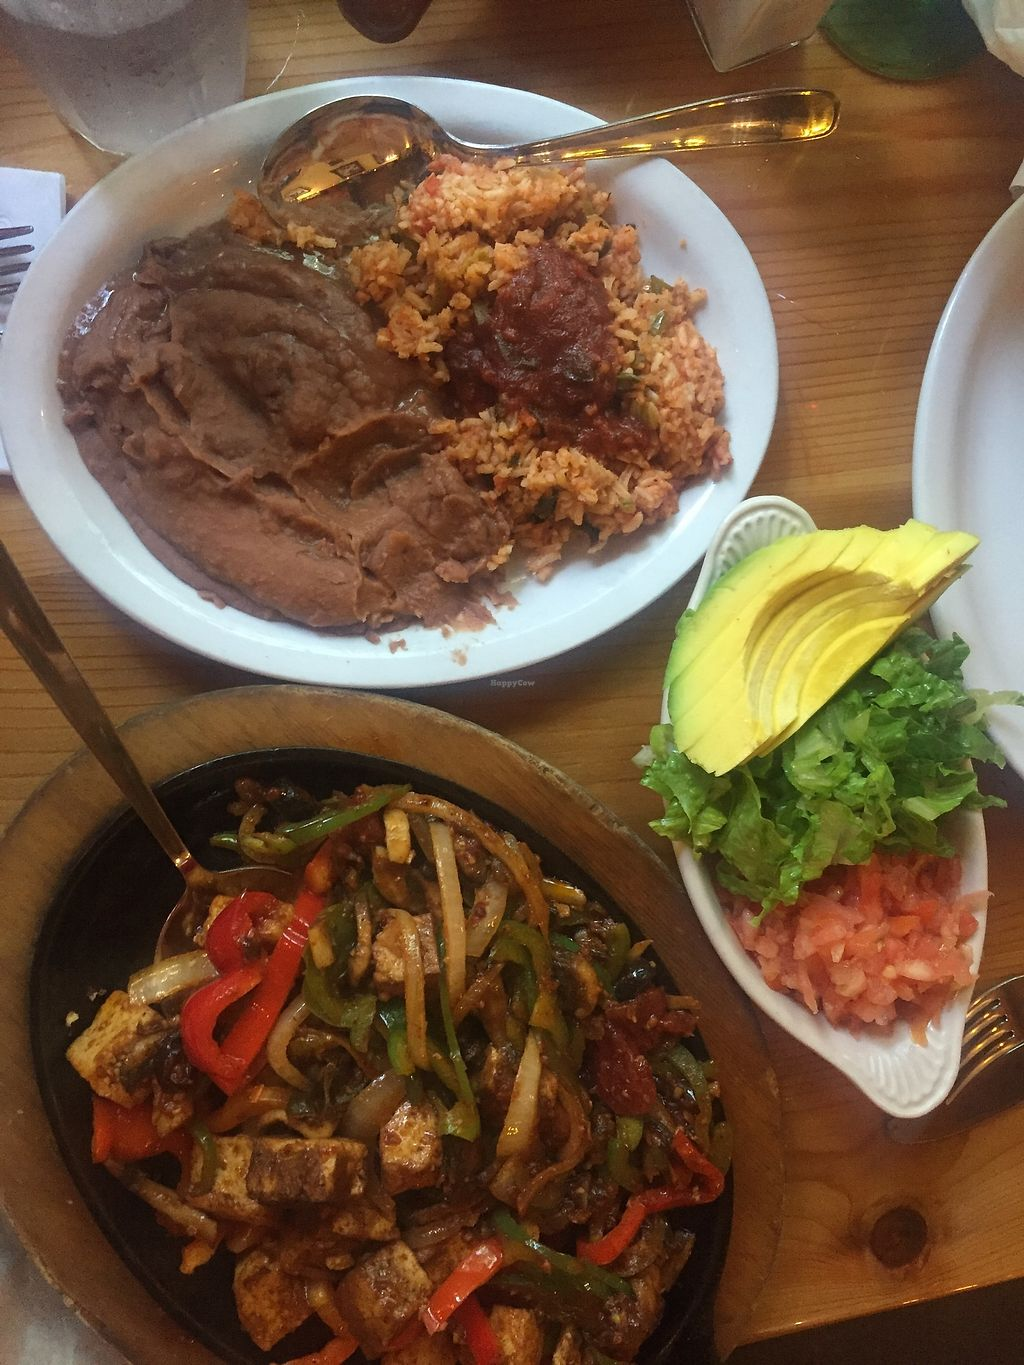 "Photo of Polli's  by <a href=""/members/profile/keithnorm"">keithnorm</a> <br/>Tofu fajitas with refried beans, lettuce, avocado, tomato <br/> August 21, 2017  - <a href='/contact/abuse/image/99153/295319'>Report</a>"